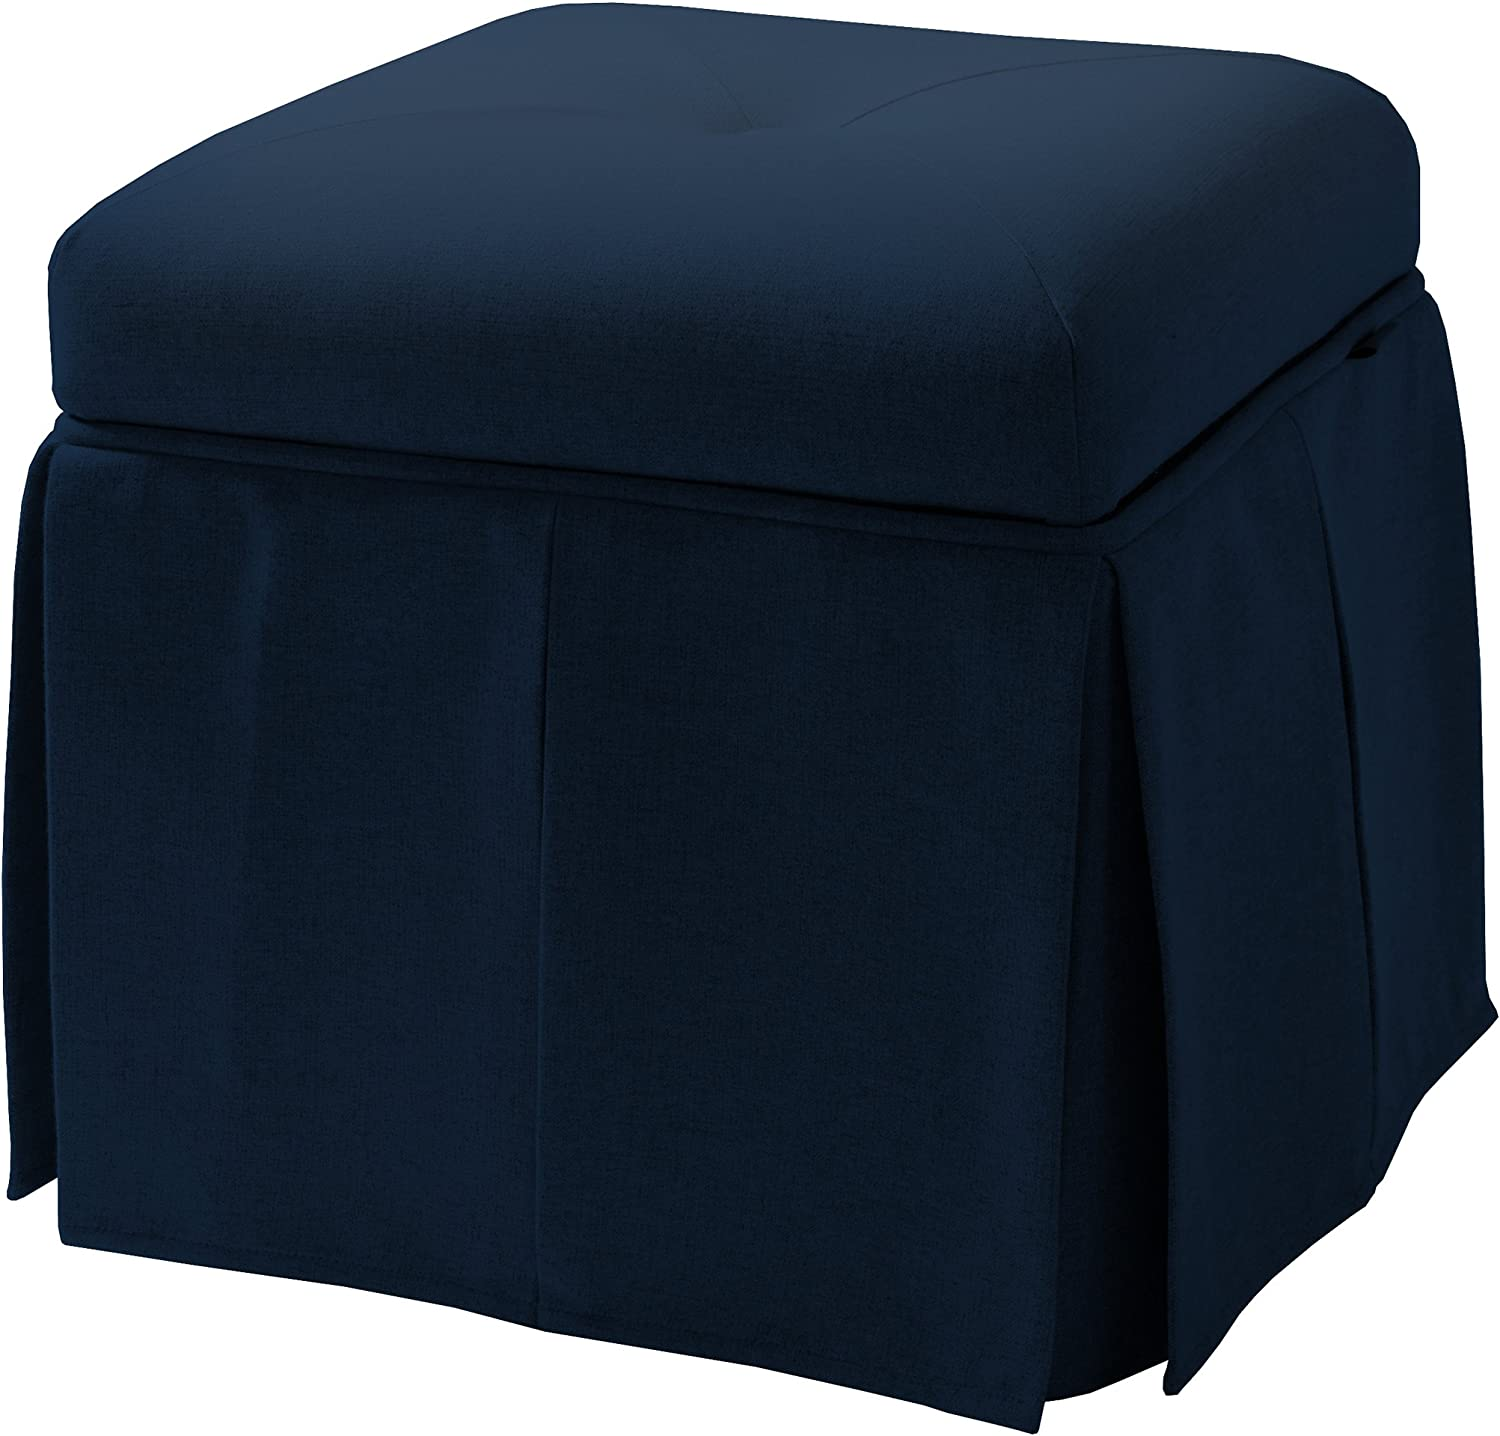 Jennifer Taylor Home Stacy Storage Vanity Stool, Midnight Blue